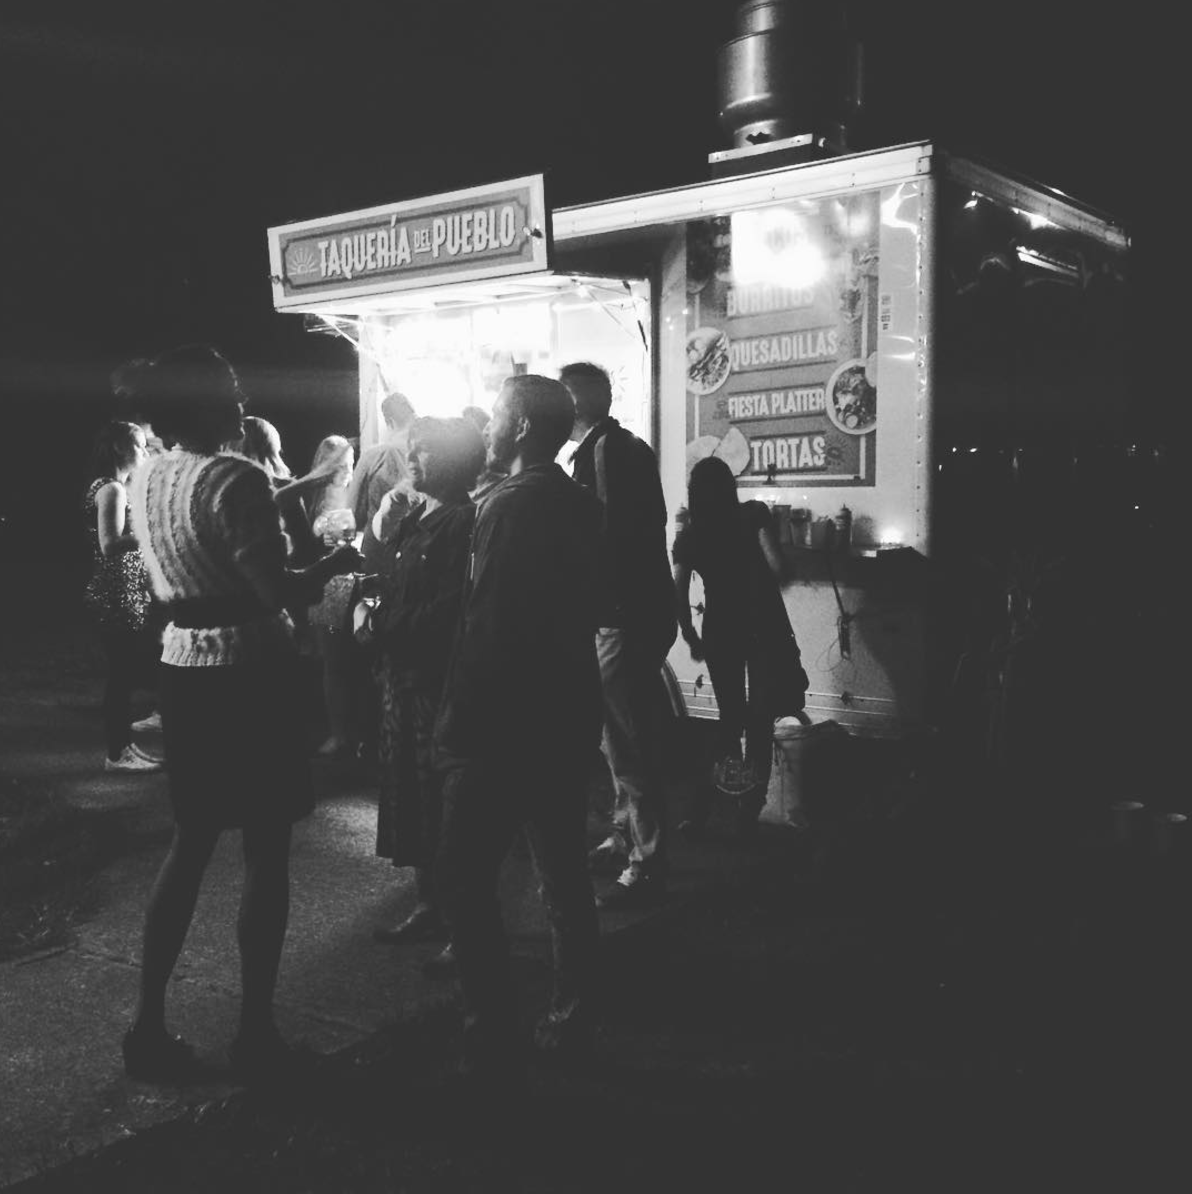 food truck wedding catering, wedding catering, affordable wedding catering, mexican wedding catering, backyard wedding catering, casual wedding catering